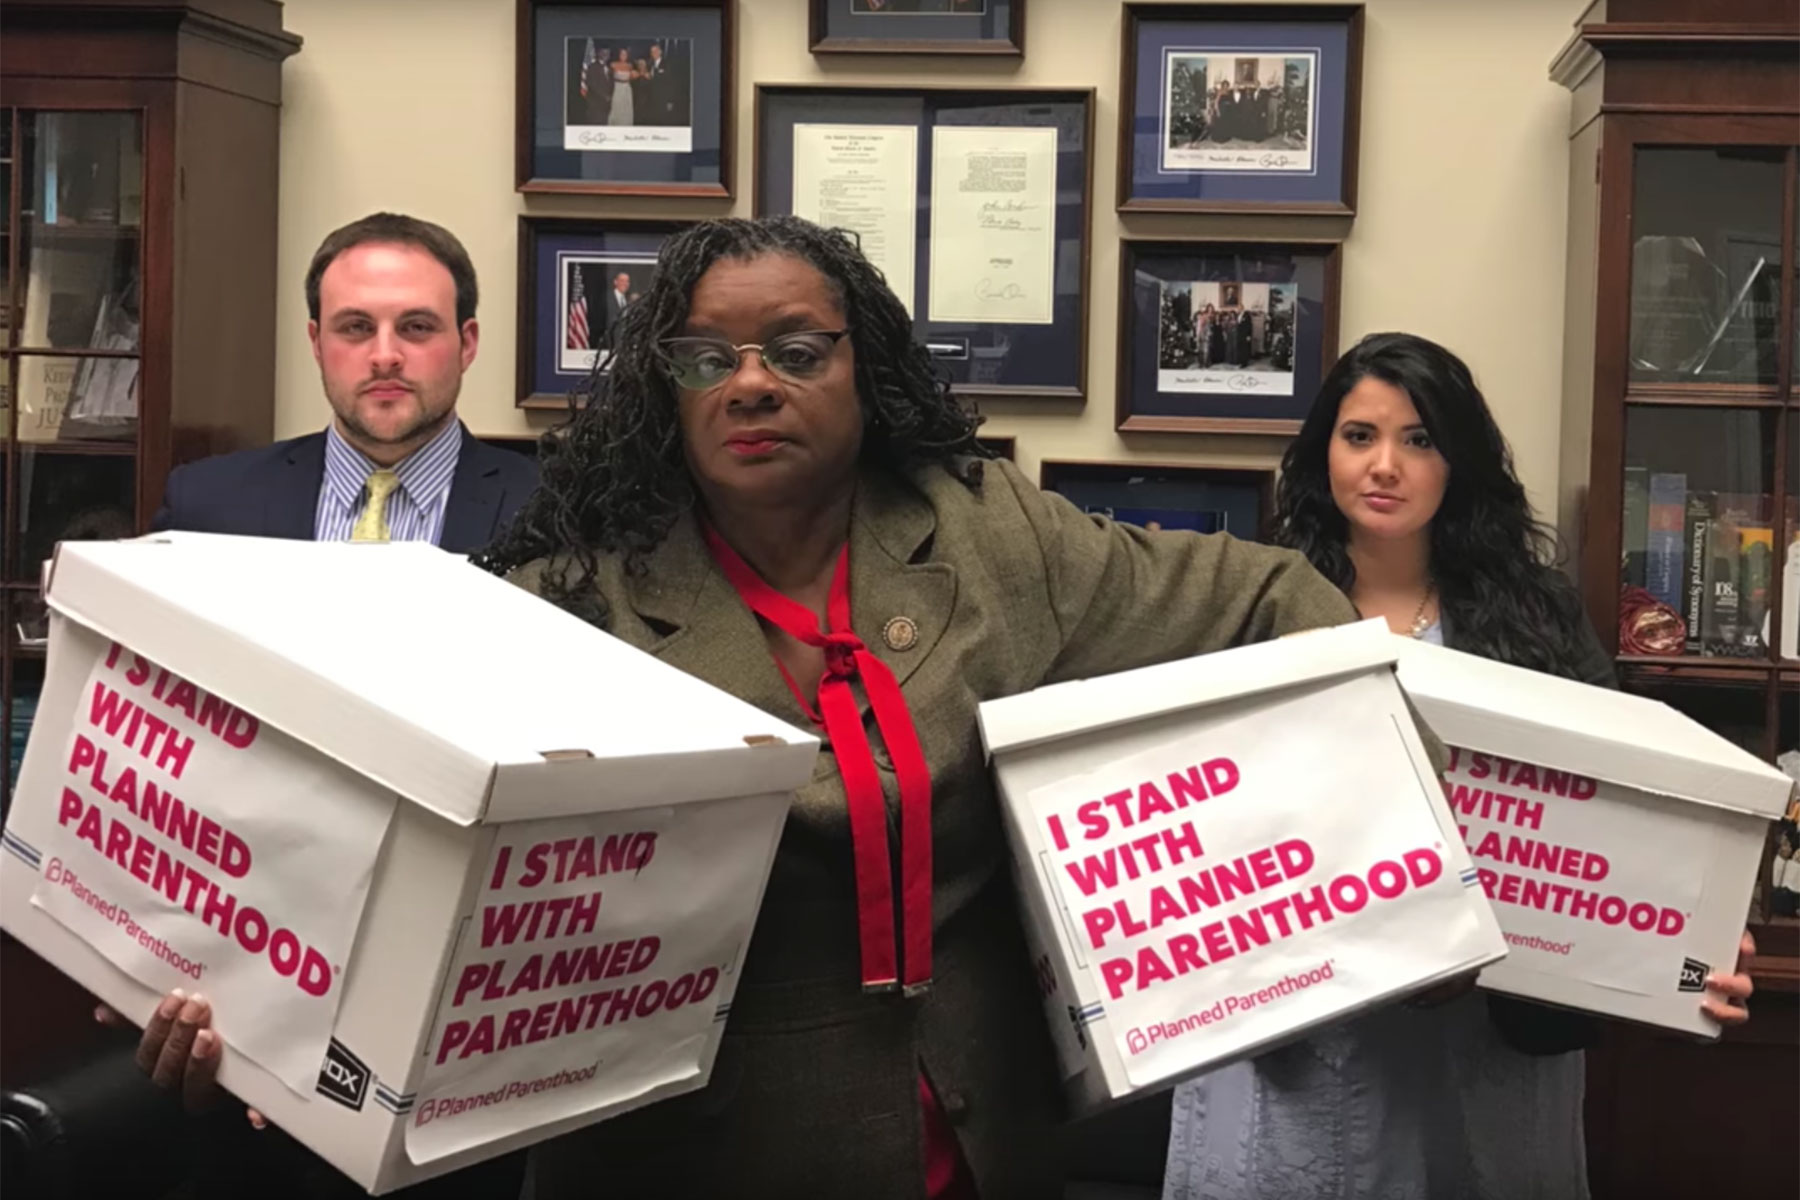 Health care professionals take stand with Planned Parenthood – Planned Parenthood Madison Wi Park St